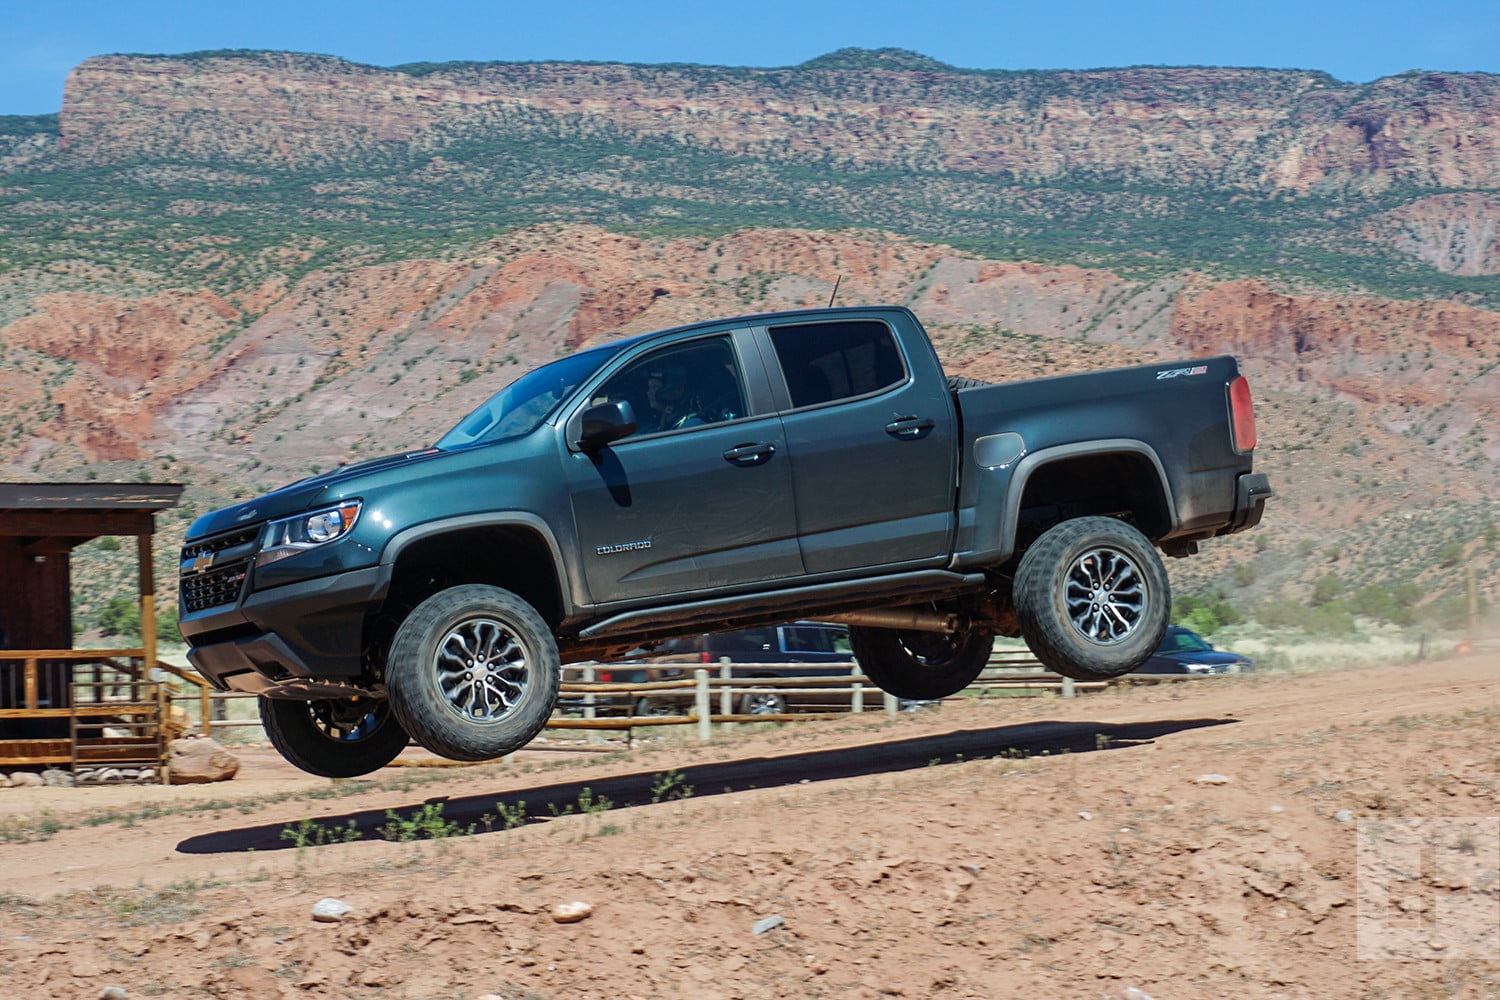 2017 Chevrolet Colorado Zr2 Offers Off Road Capability And Street Manners Digital Trends